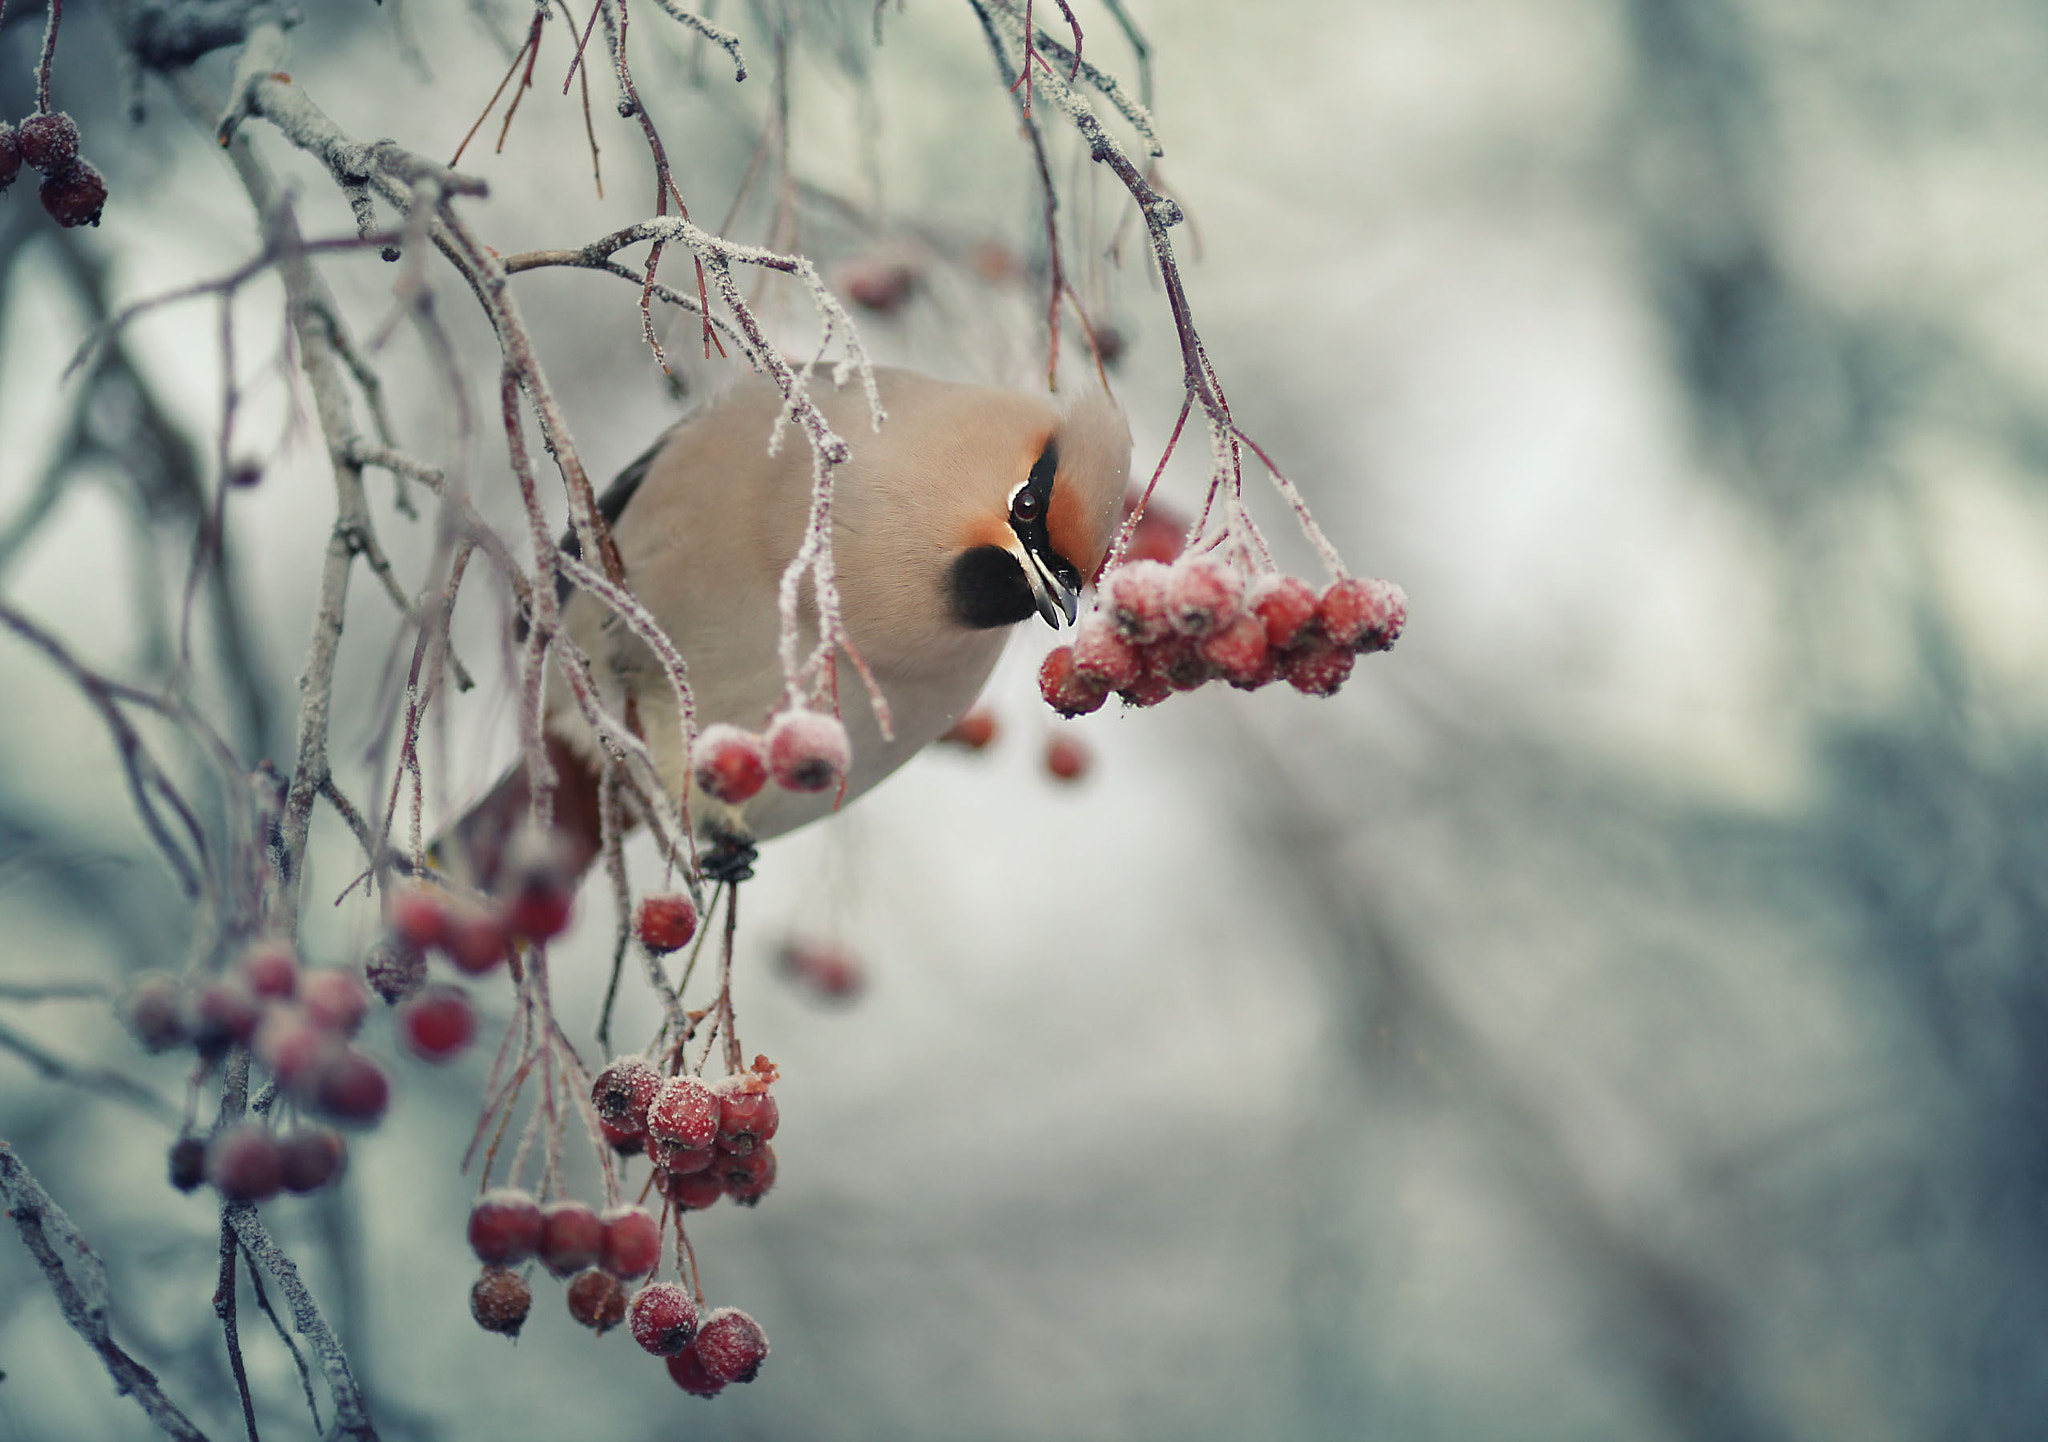 Photograph waxwing in Russia by Kichigin Sergey on 500px